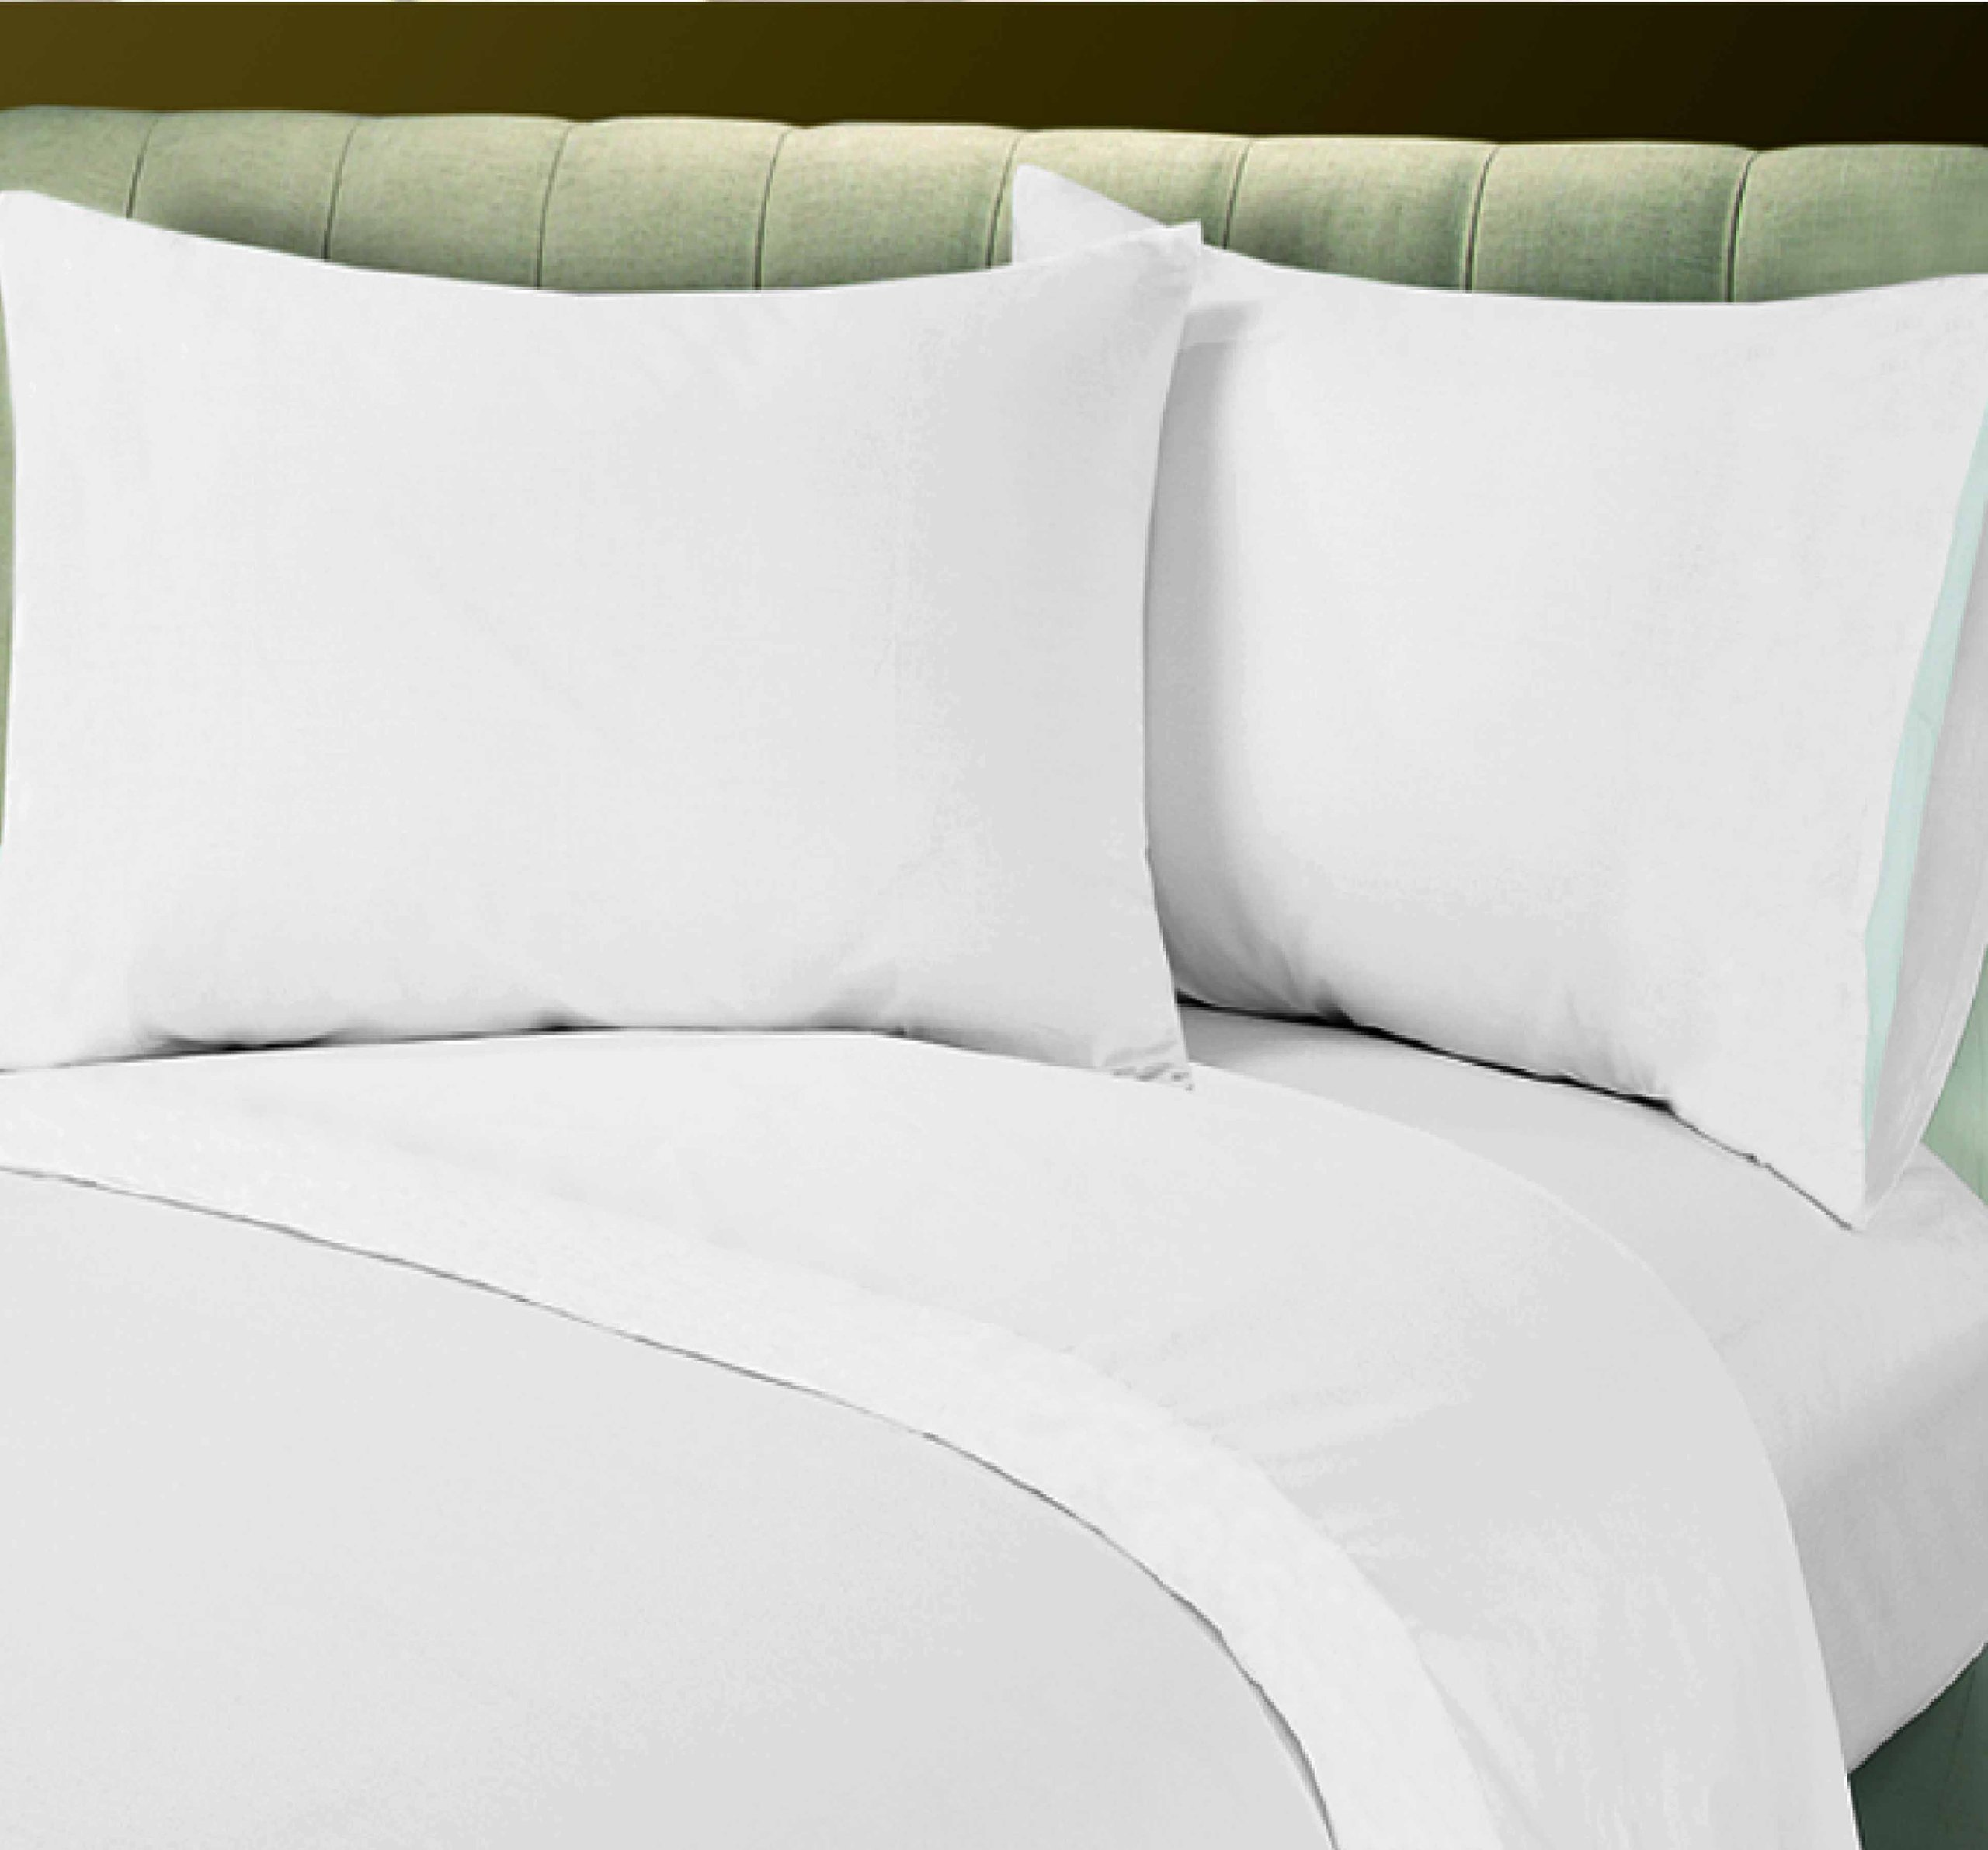 Union Hospitality 24 Standard Size Pillow Cases 20'' x 32'' T200 Thread Count Percale Hotel Linen - White (Standard) by Union Hospitality (Image #1)